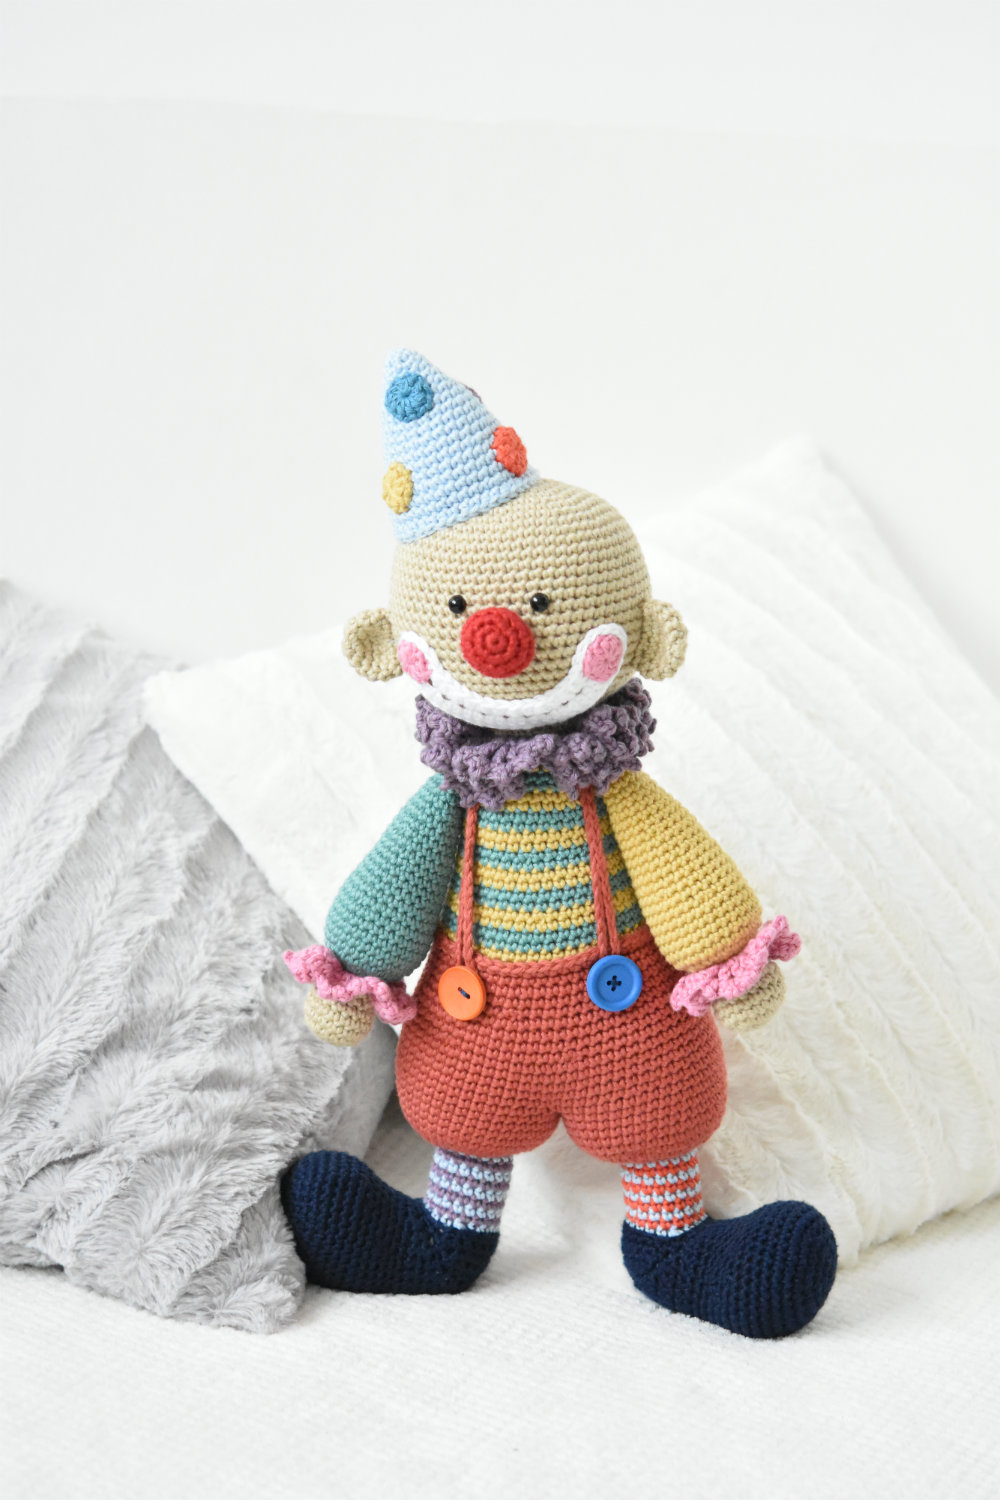 Chatterbox The Clown Amigurumi Crochet Doll Pattern Lilleliis